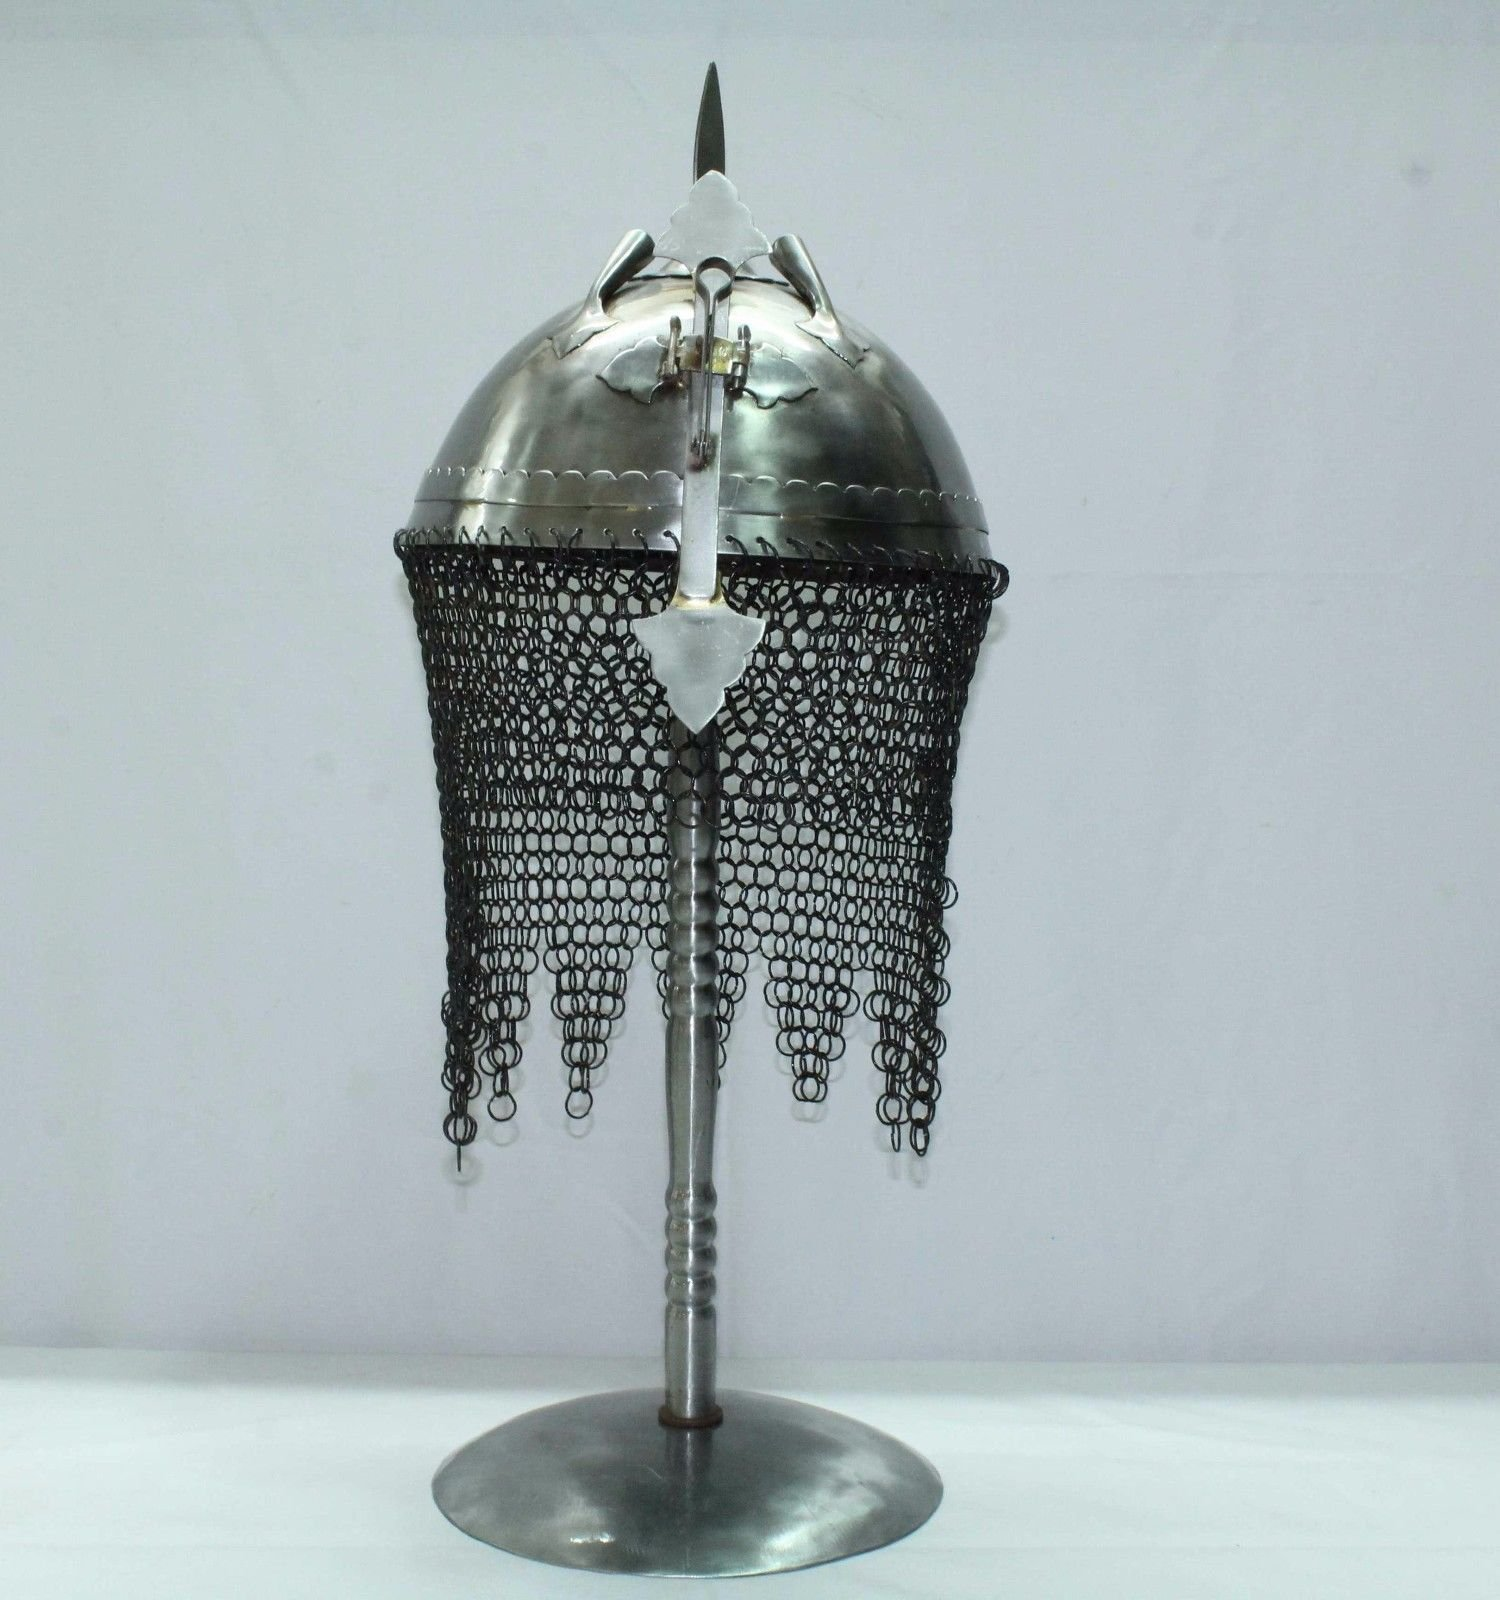 Rajasthan Gems Indo Persian Ottoman Rajput Islamic Soldier Helmet Armour with Stand Decorative